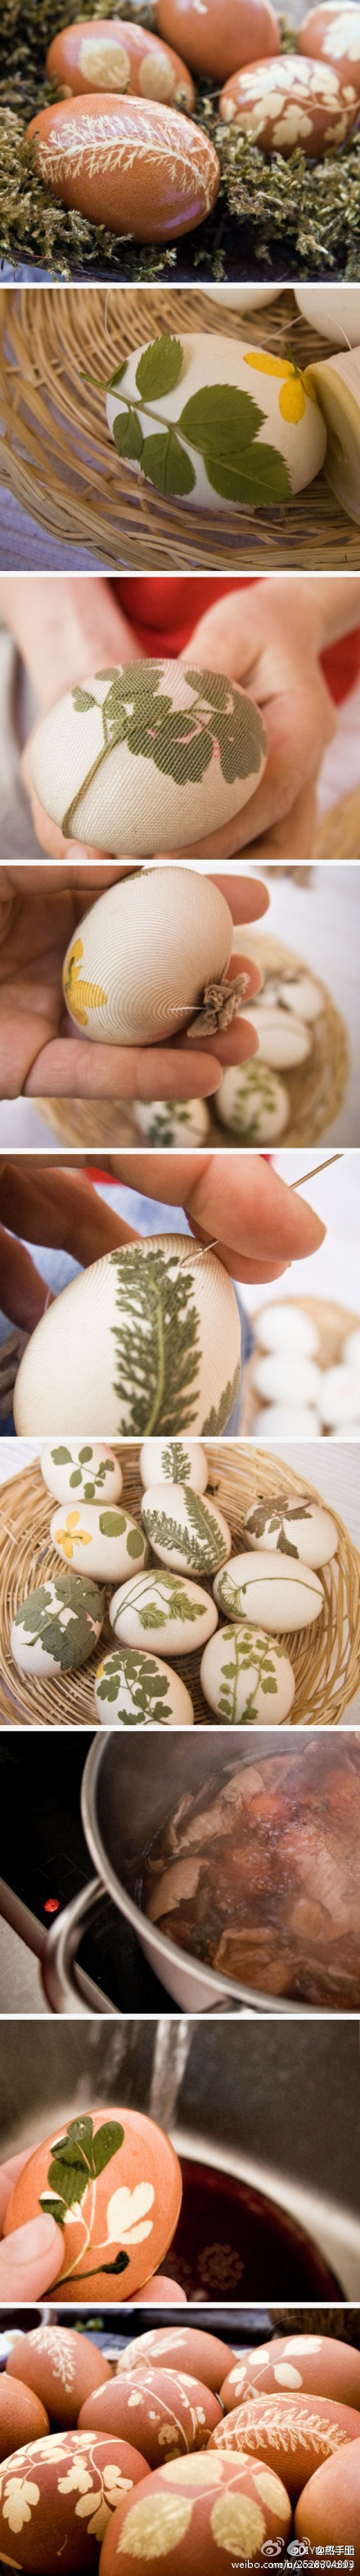 Amazing for Easter eggs!